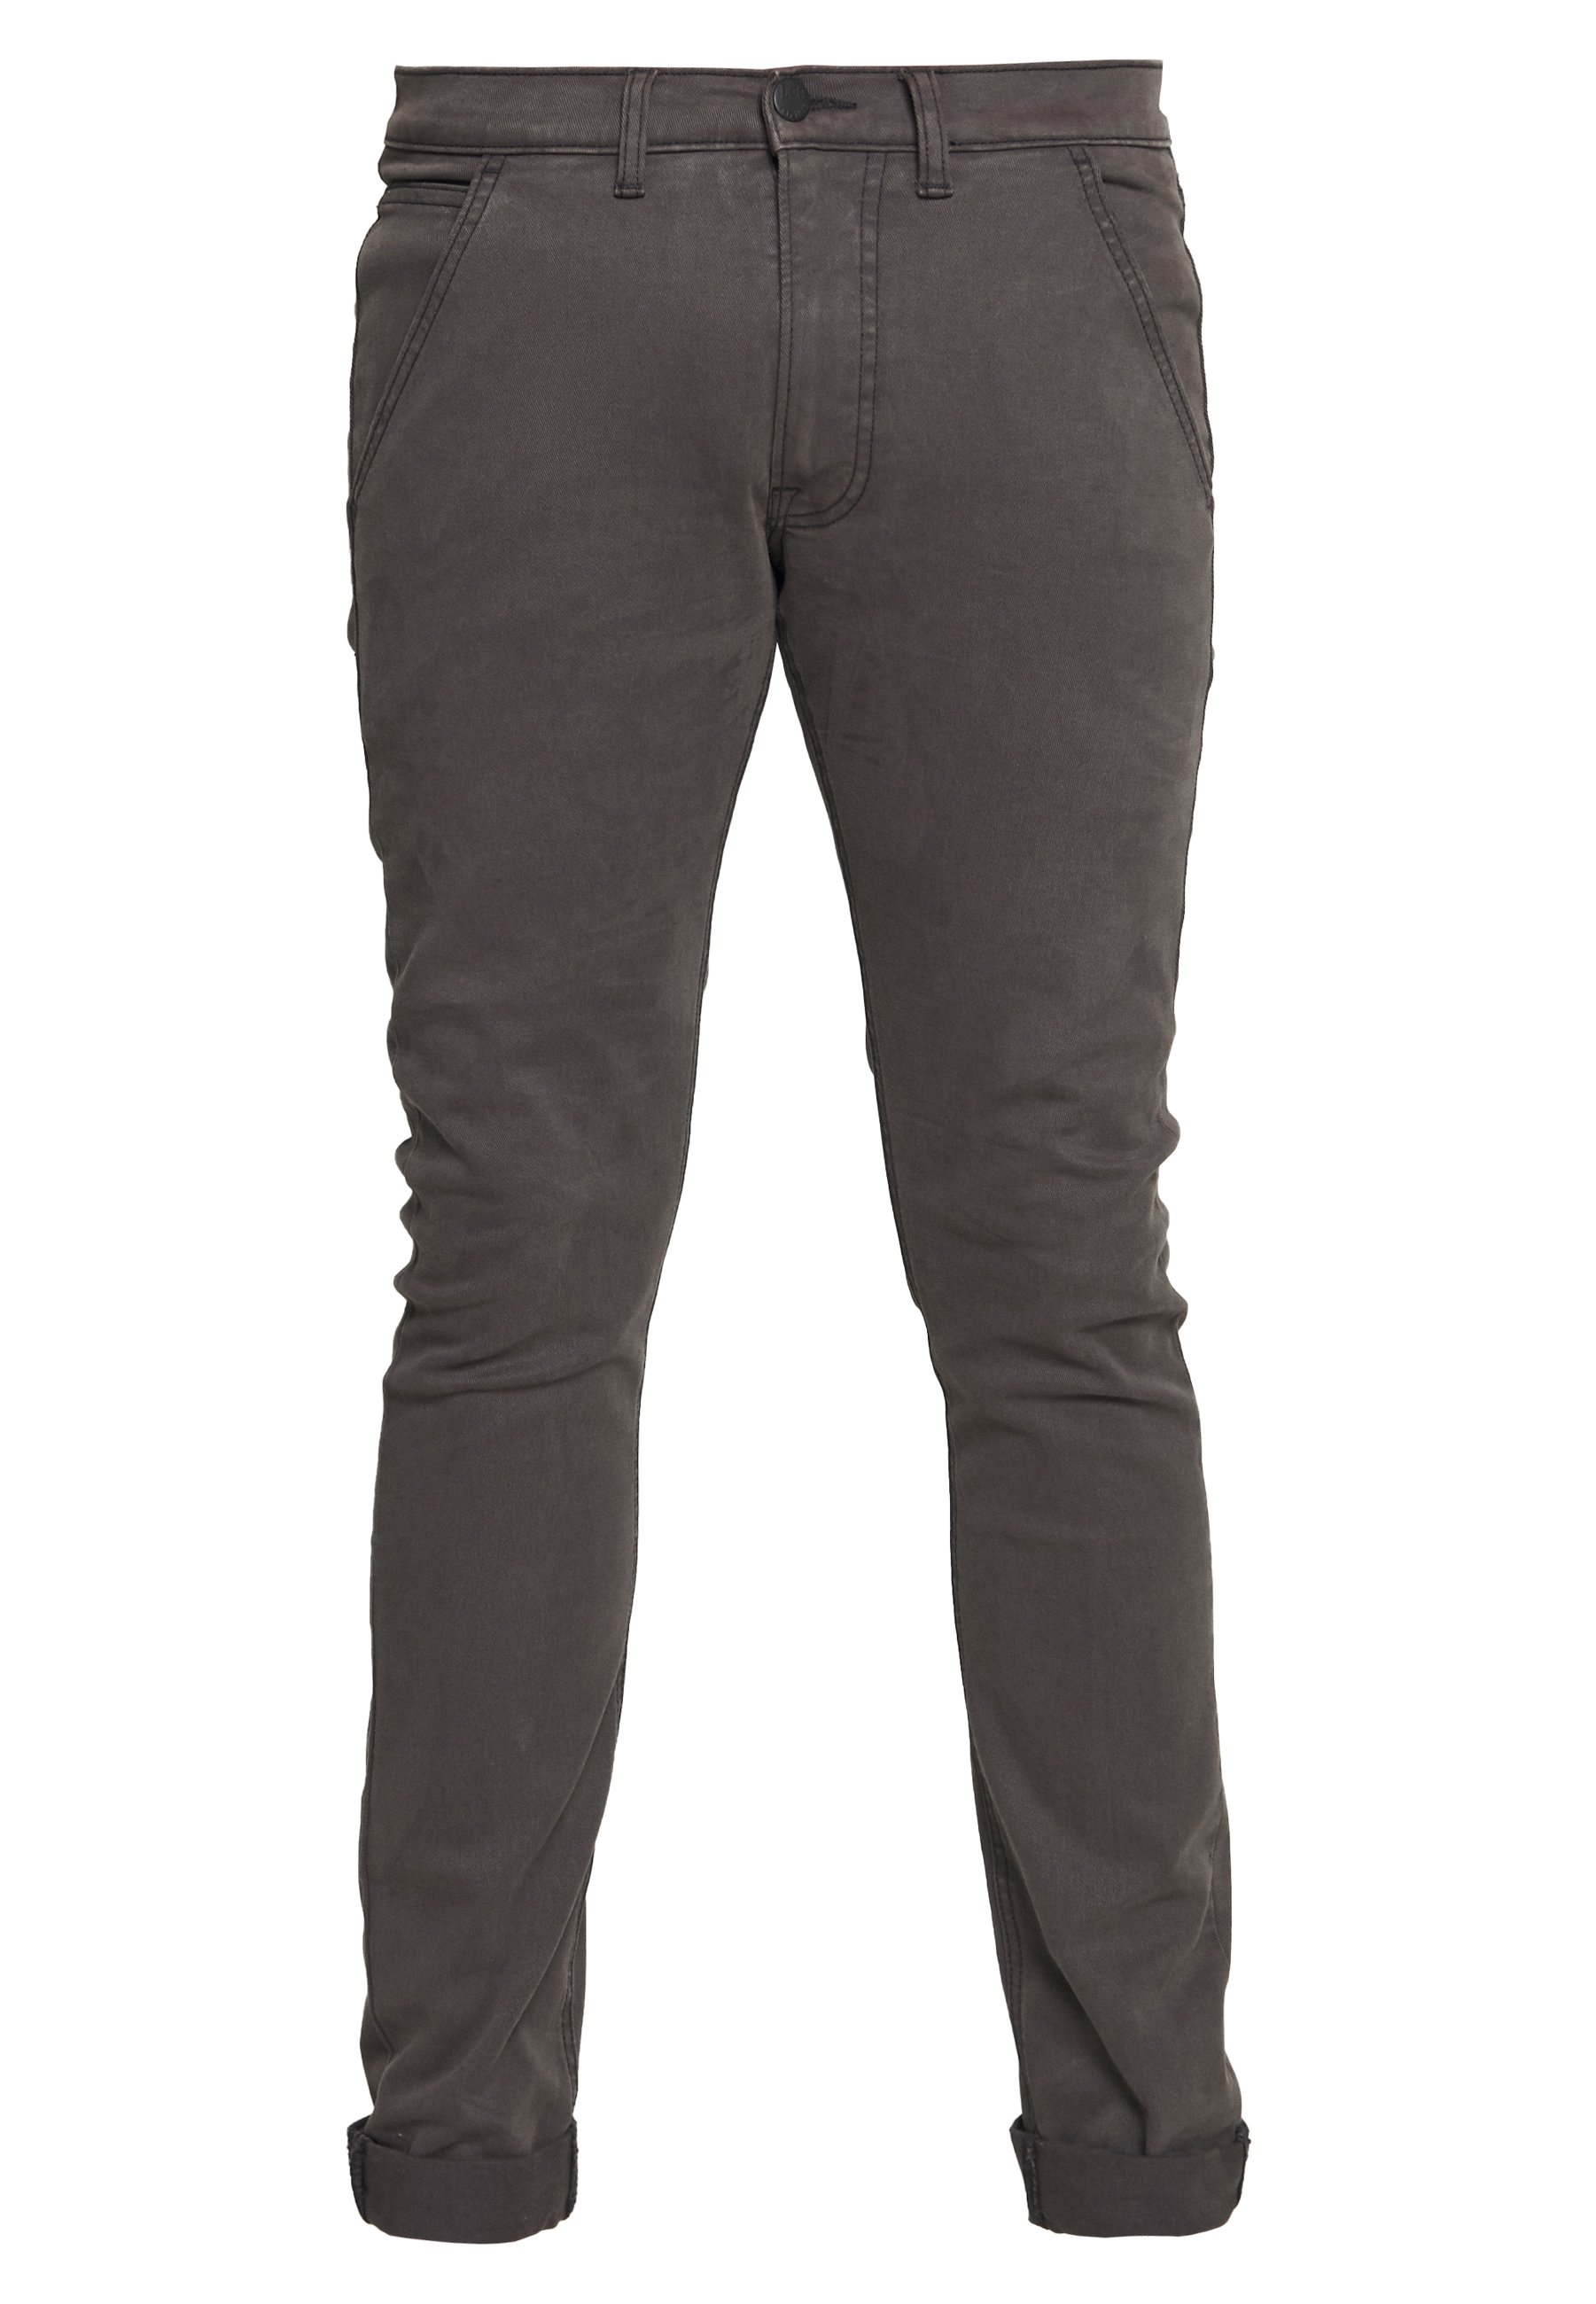 Lee Luke Tailored - Jeans Slim Fit Steel Grey